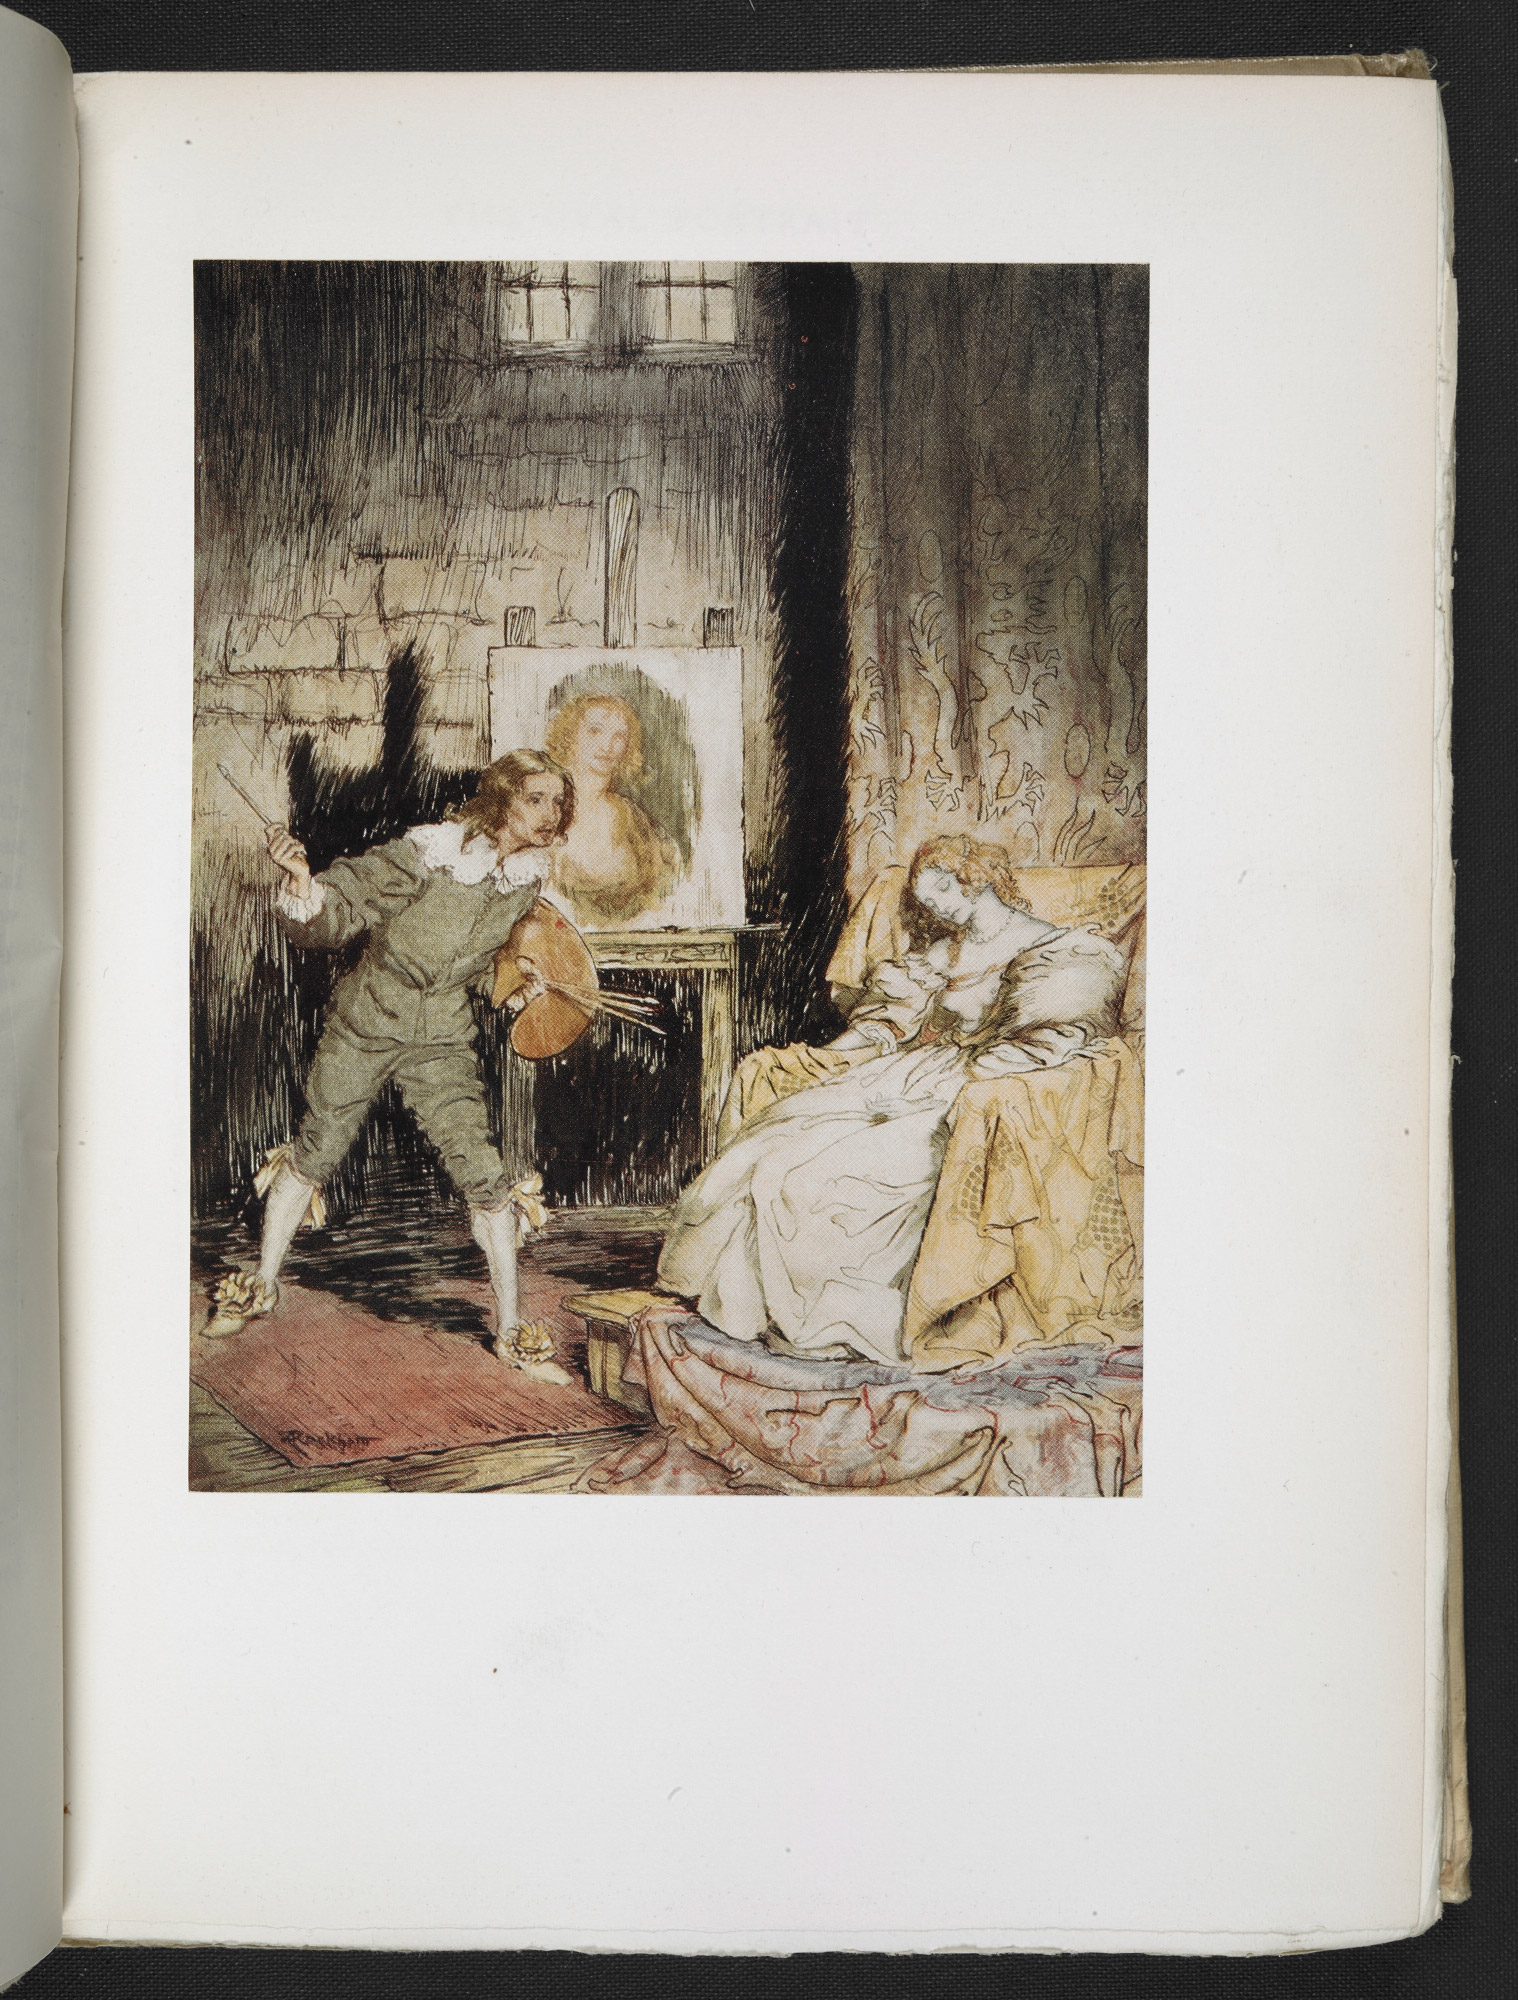 Poe's Tales of Mystery & Imagination, illustrated by Arthur Rackham